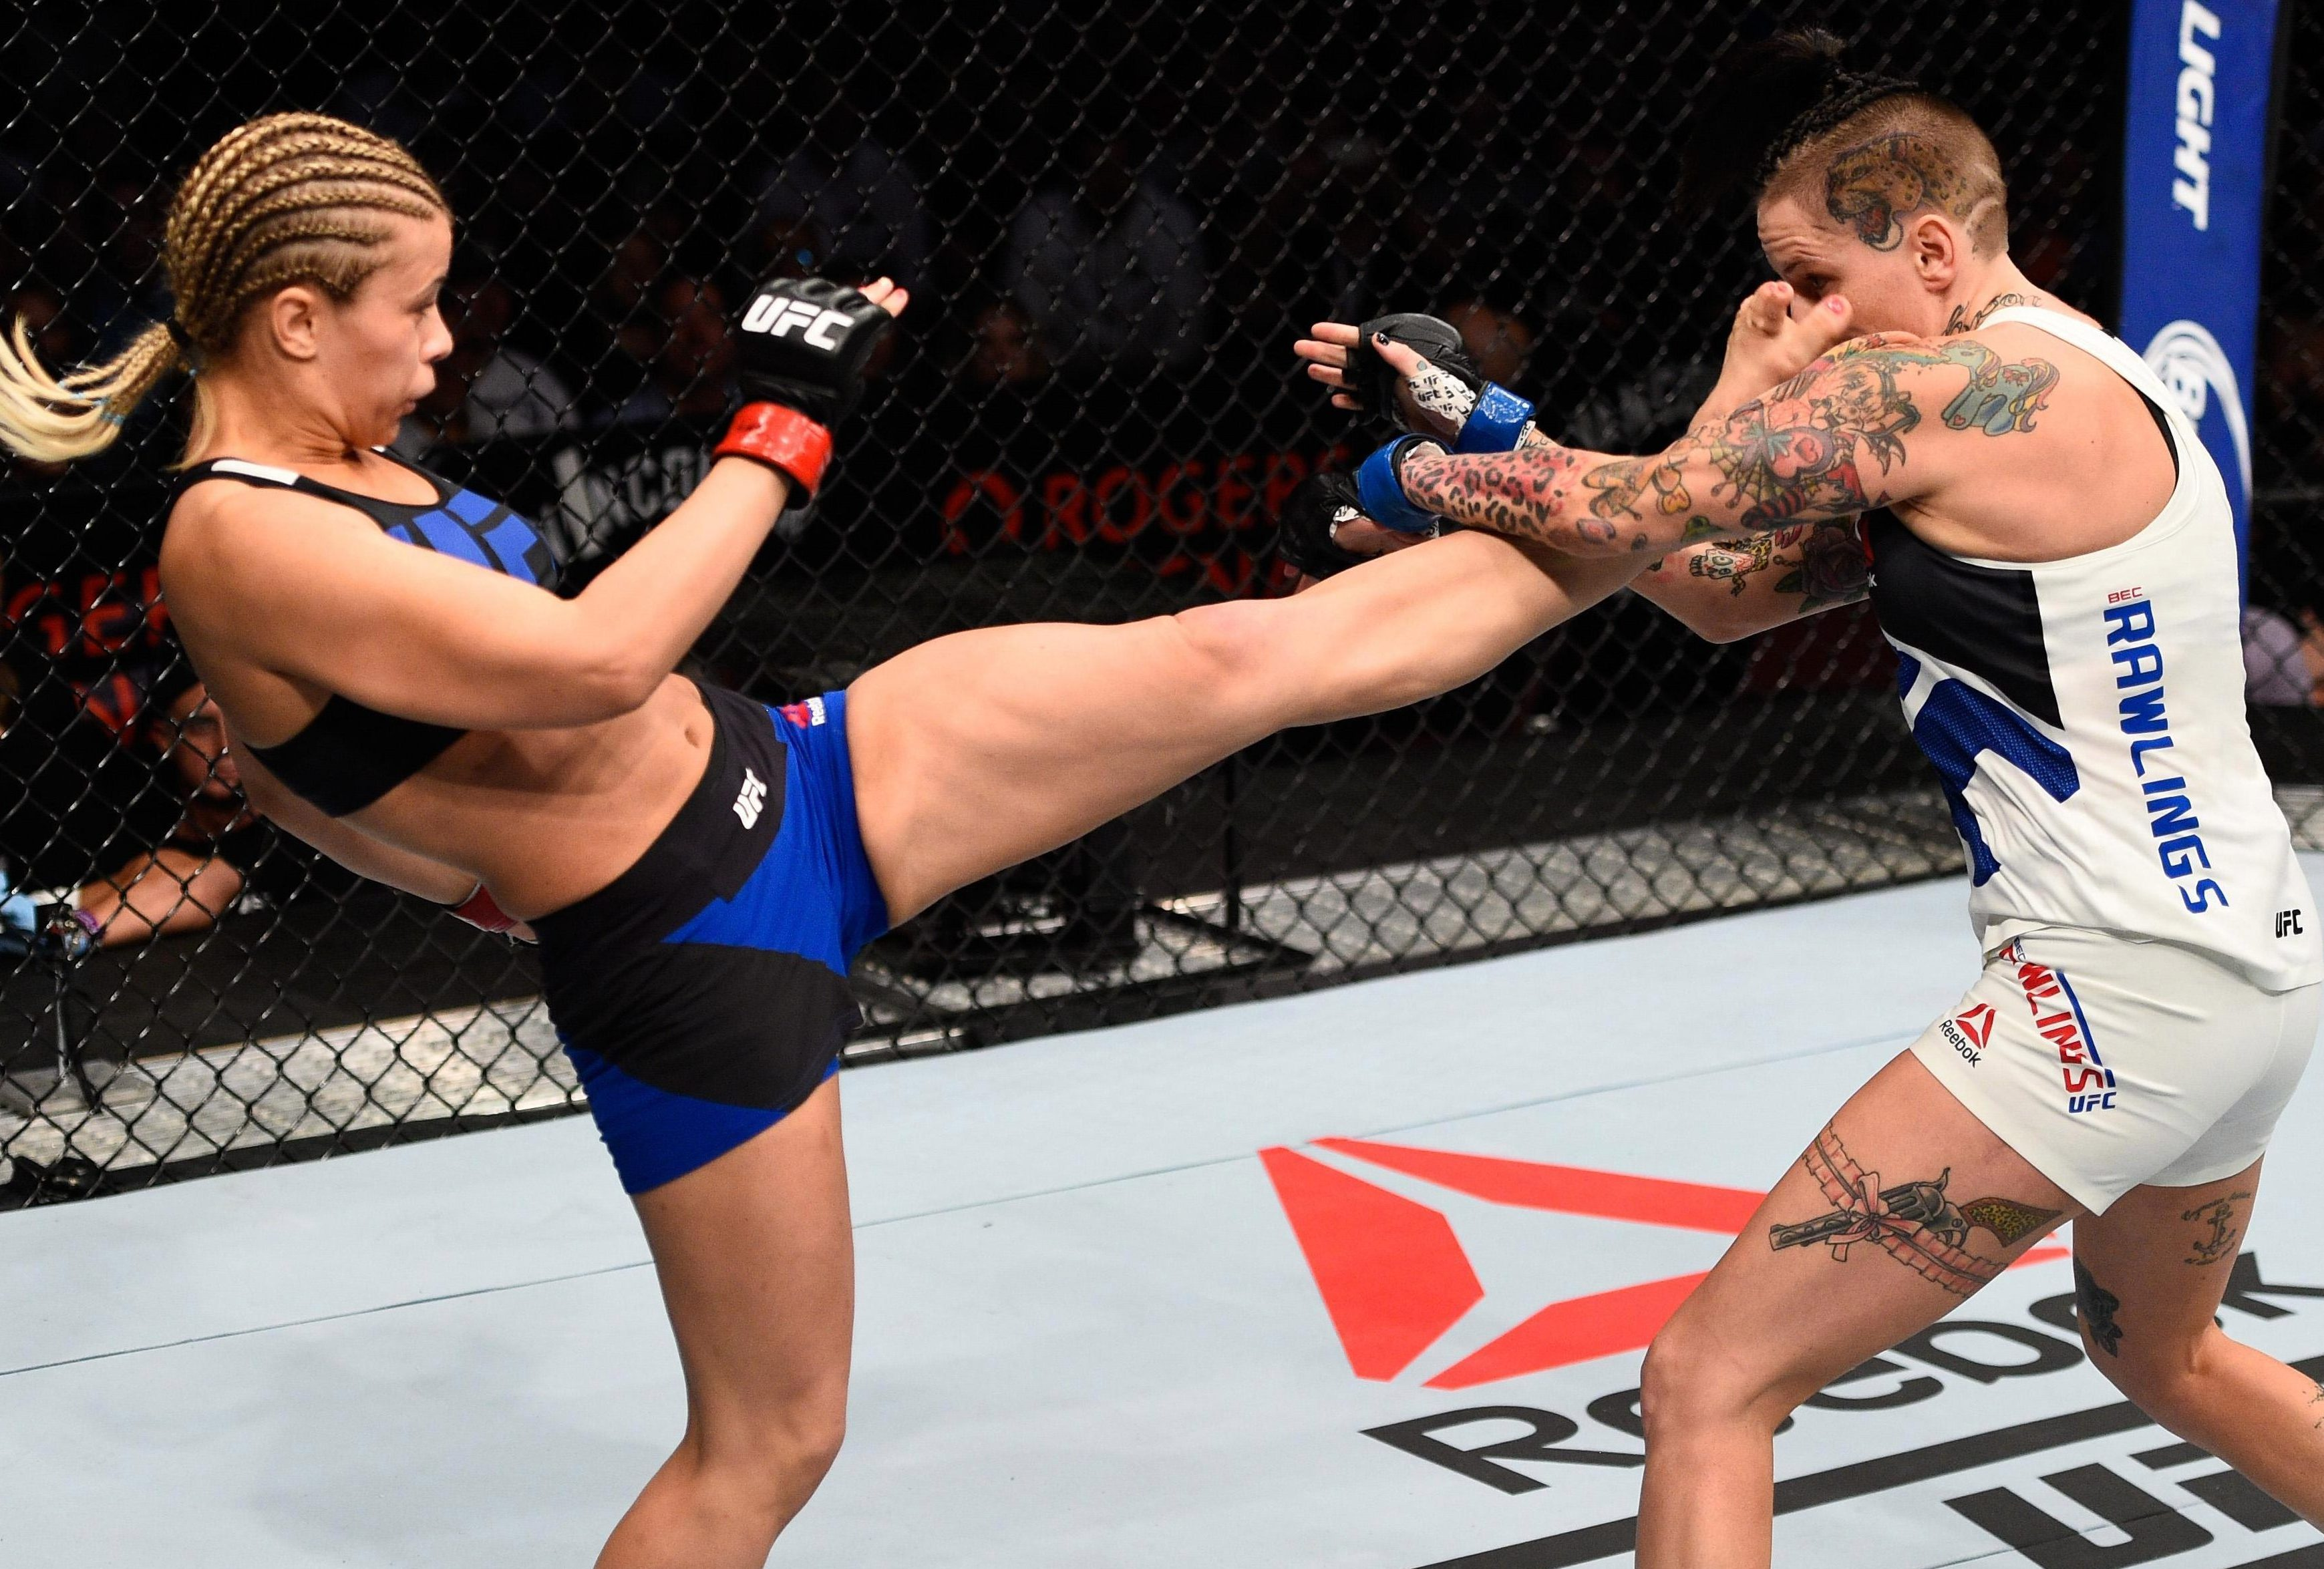 UFC star Paige VanZant is currently recovering from a broken arm